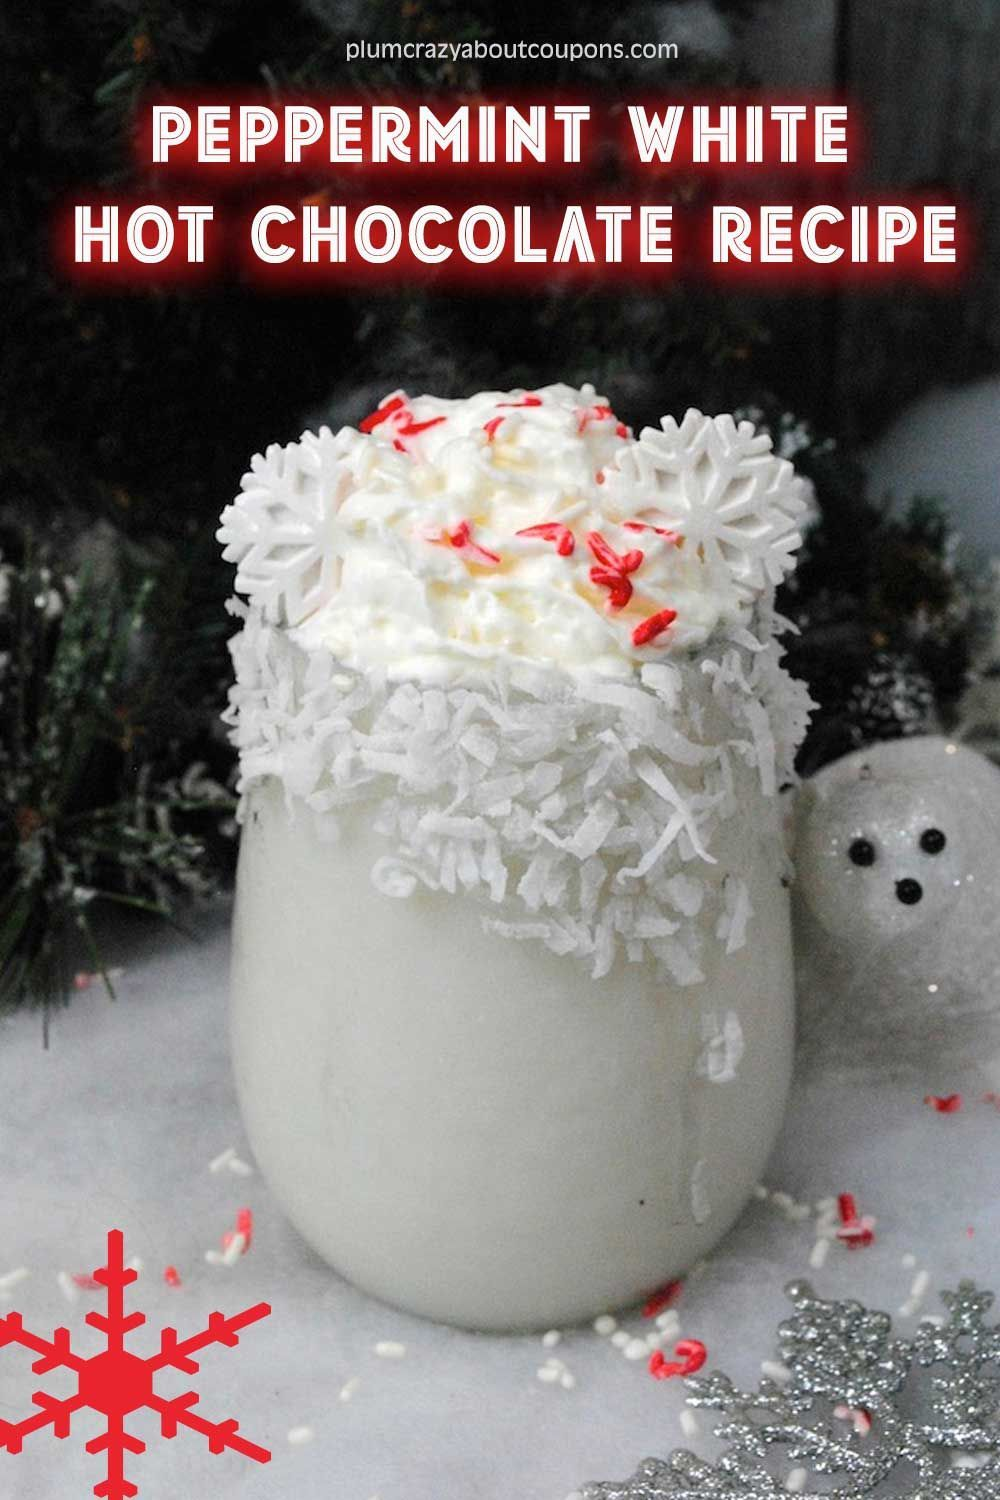 Peppermint White Hot Cocoa #hotchocolaterecipe